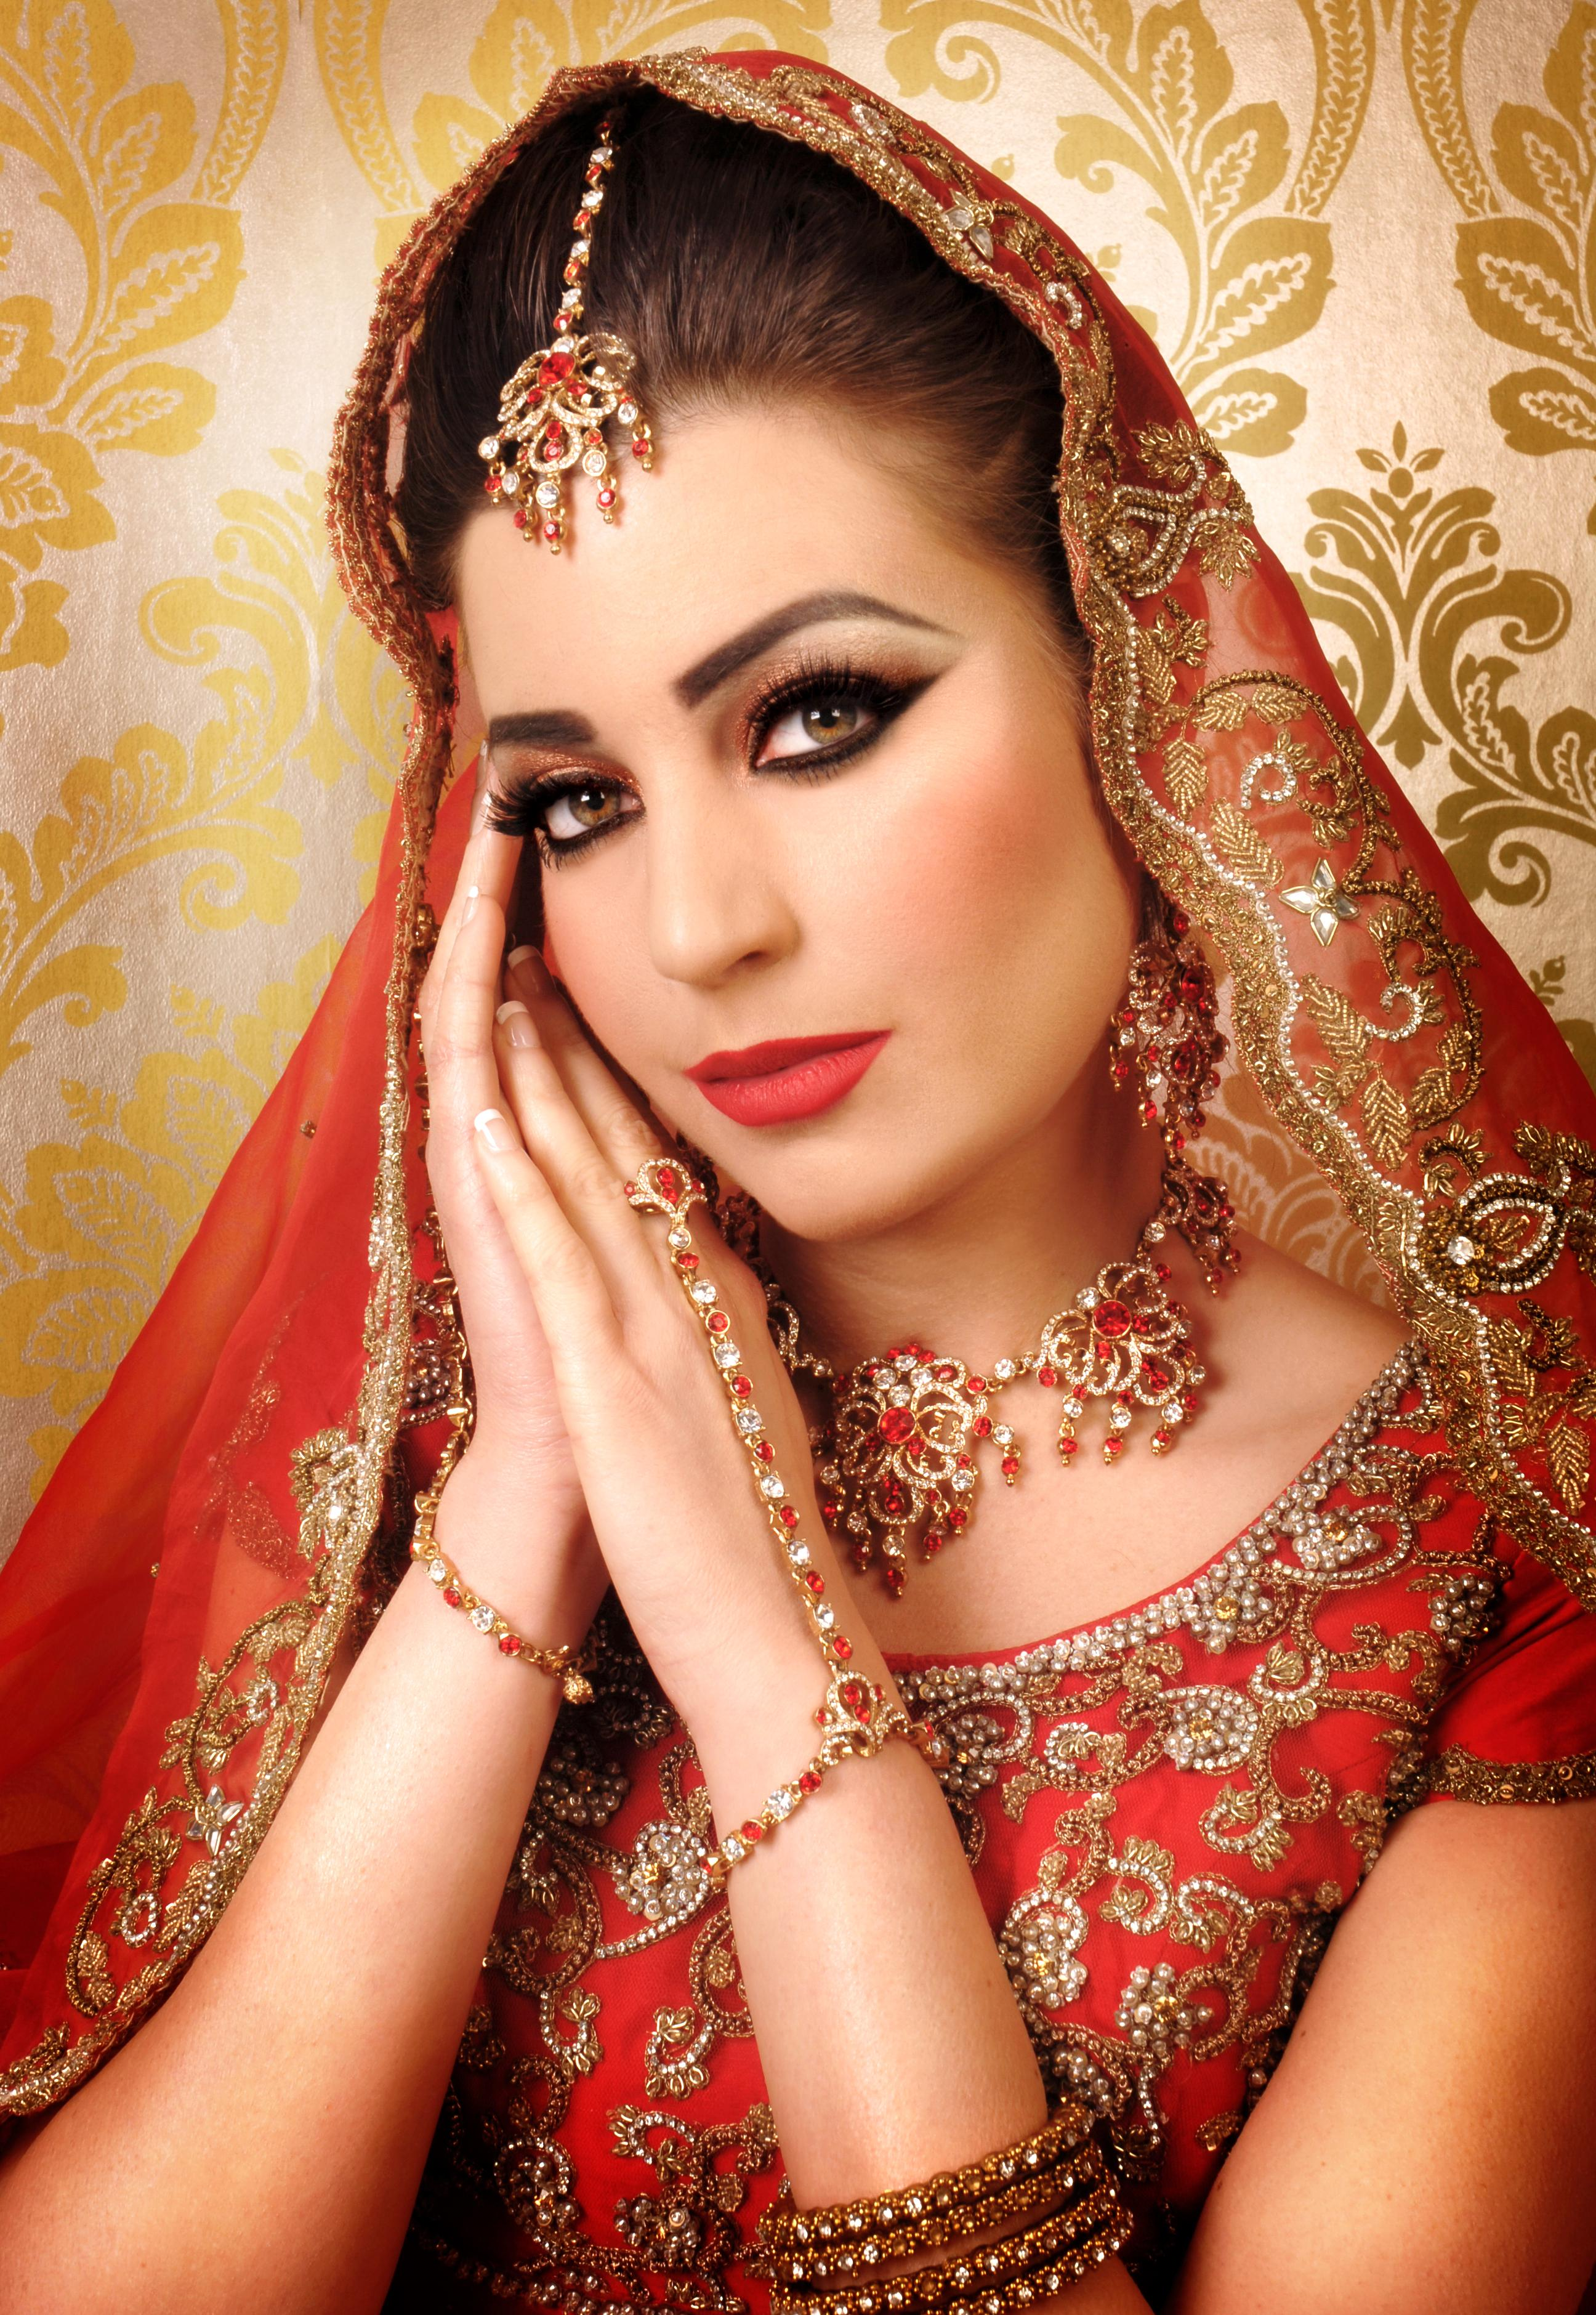 Bridal Makeup Beauty Parlour - Mugeek Vidalondon